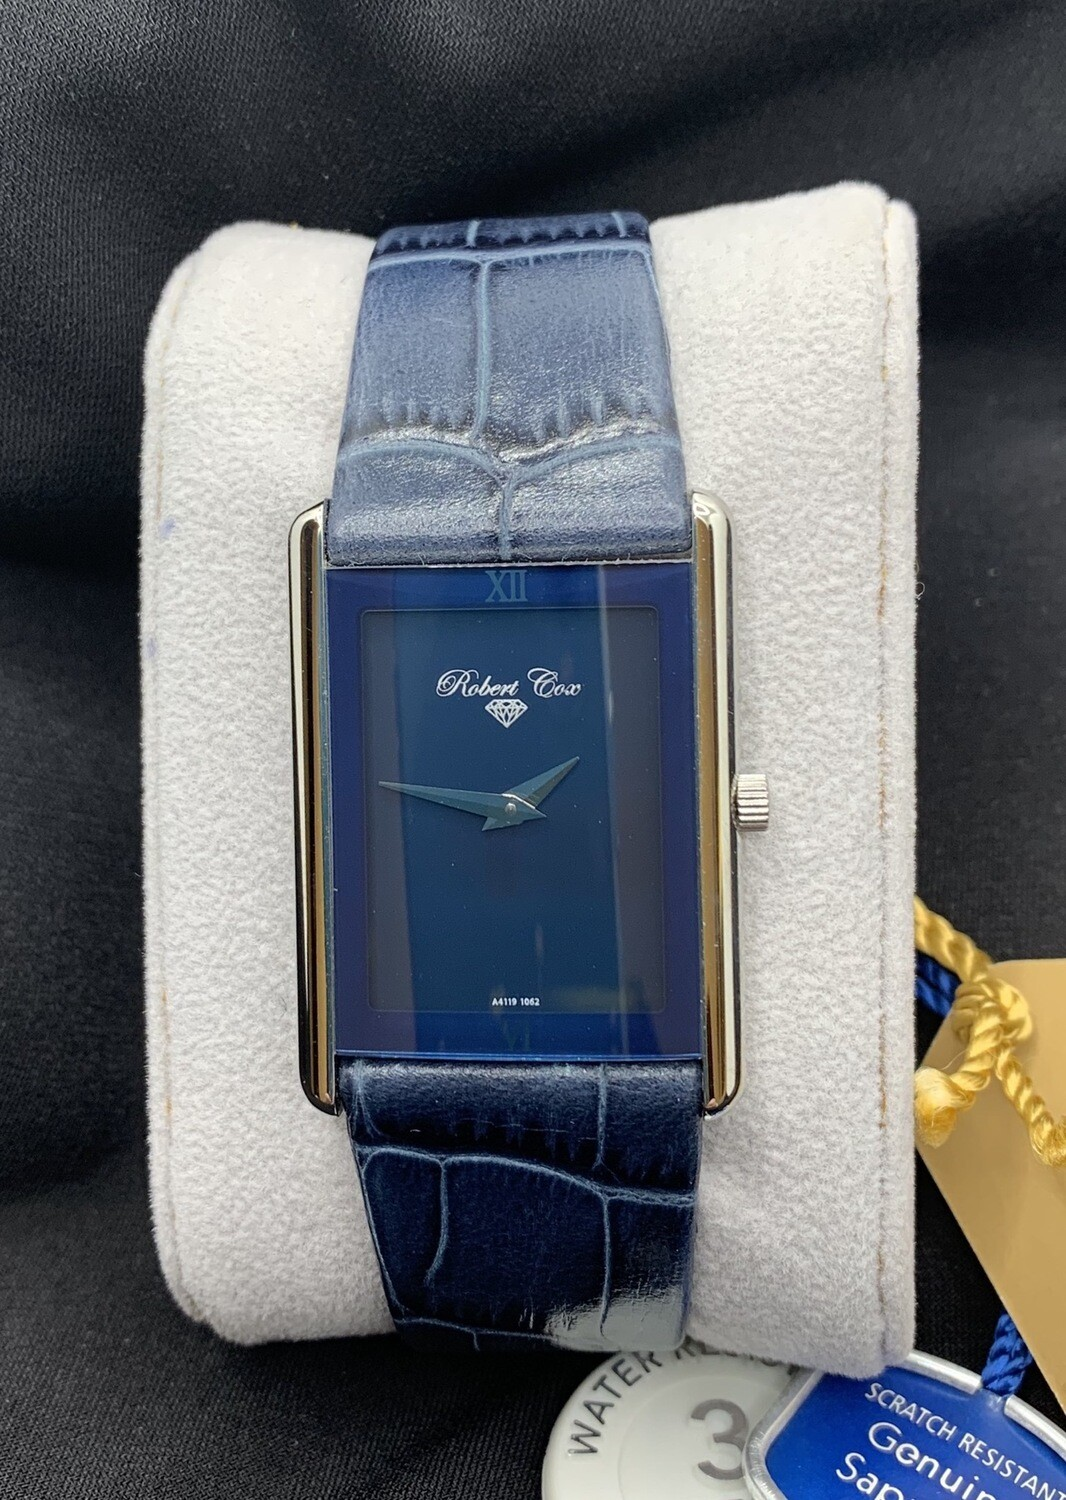 Blue Stainless Robert Cox Watch With Blue Leather Band